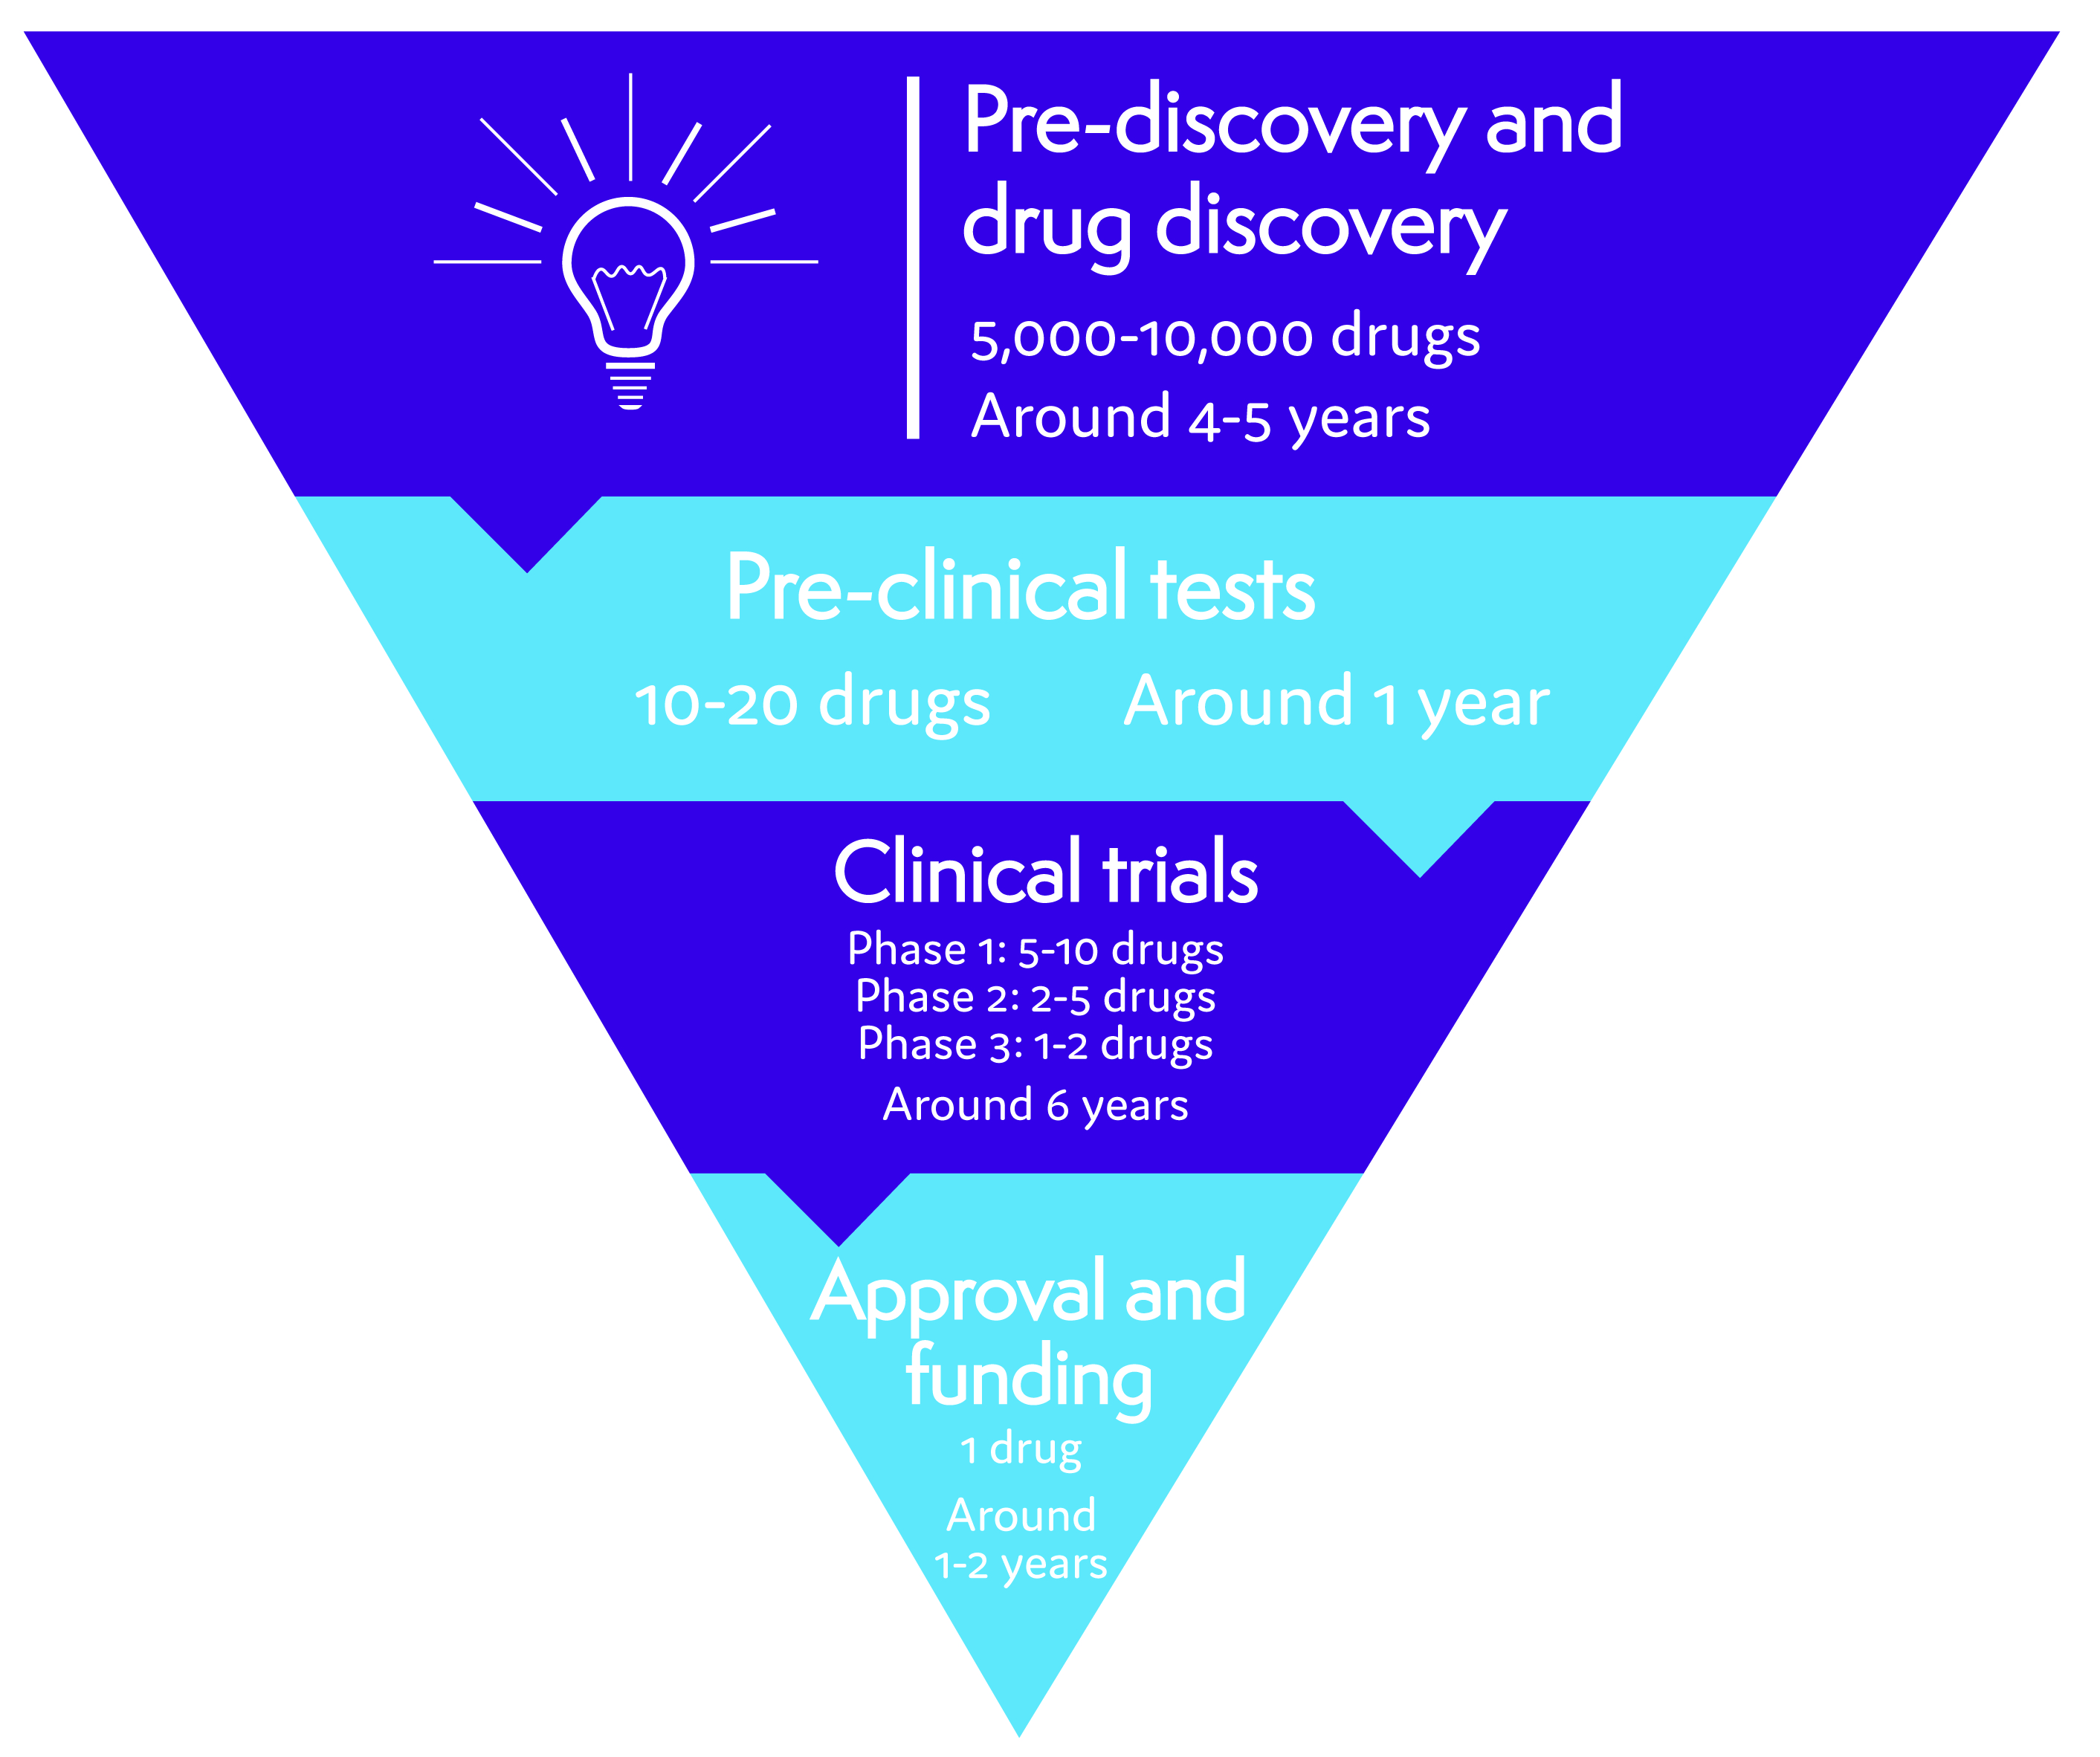 Diagram showing drug discovery, pre-clinical tests, clinical trials and drug approval and funding taking an average of 12 years, and going from thousands of potential drugs down to the one, single drug that is approved